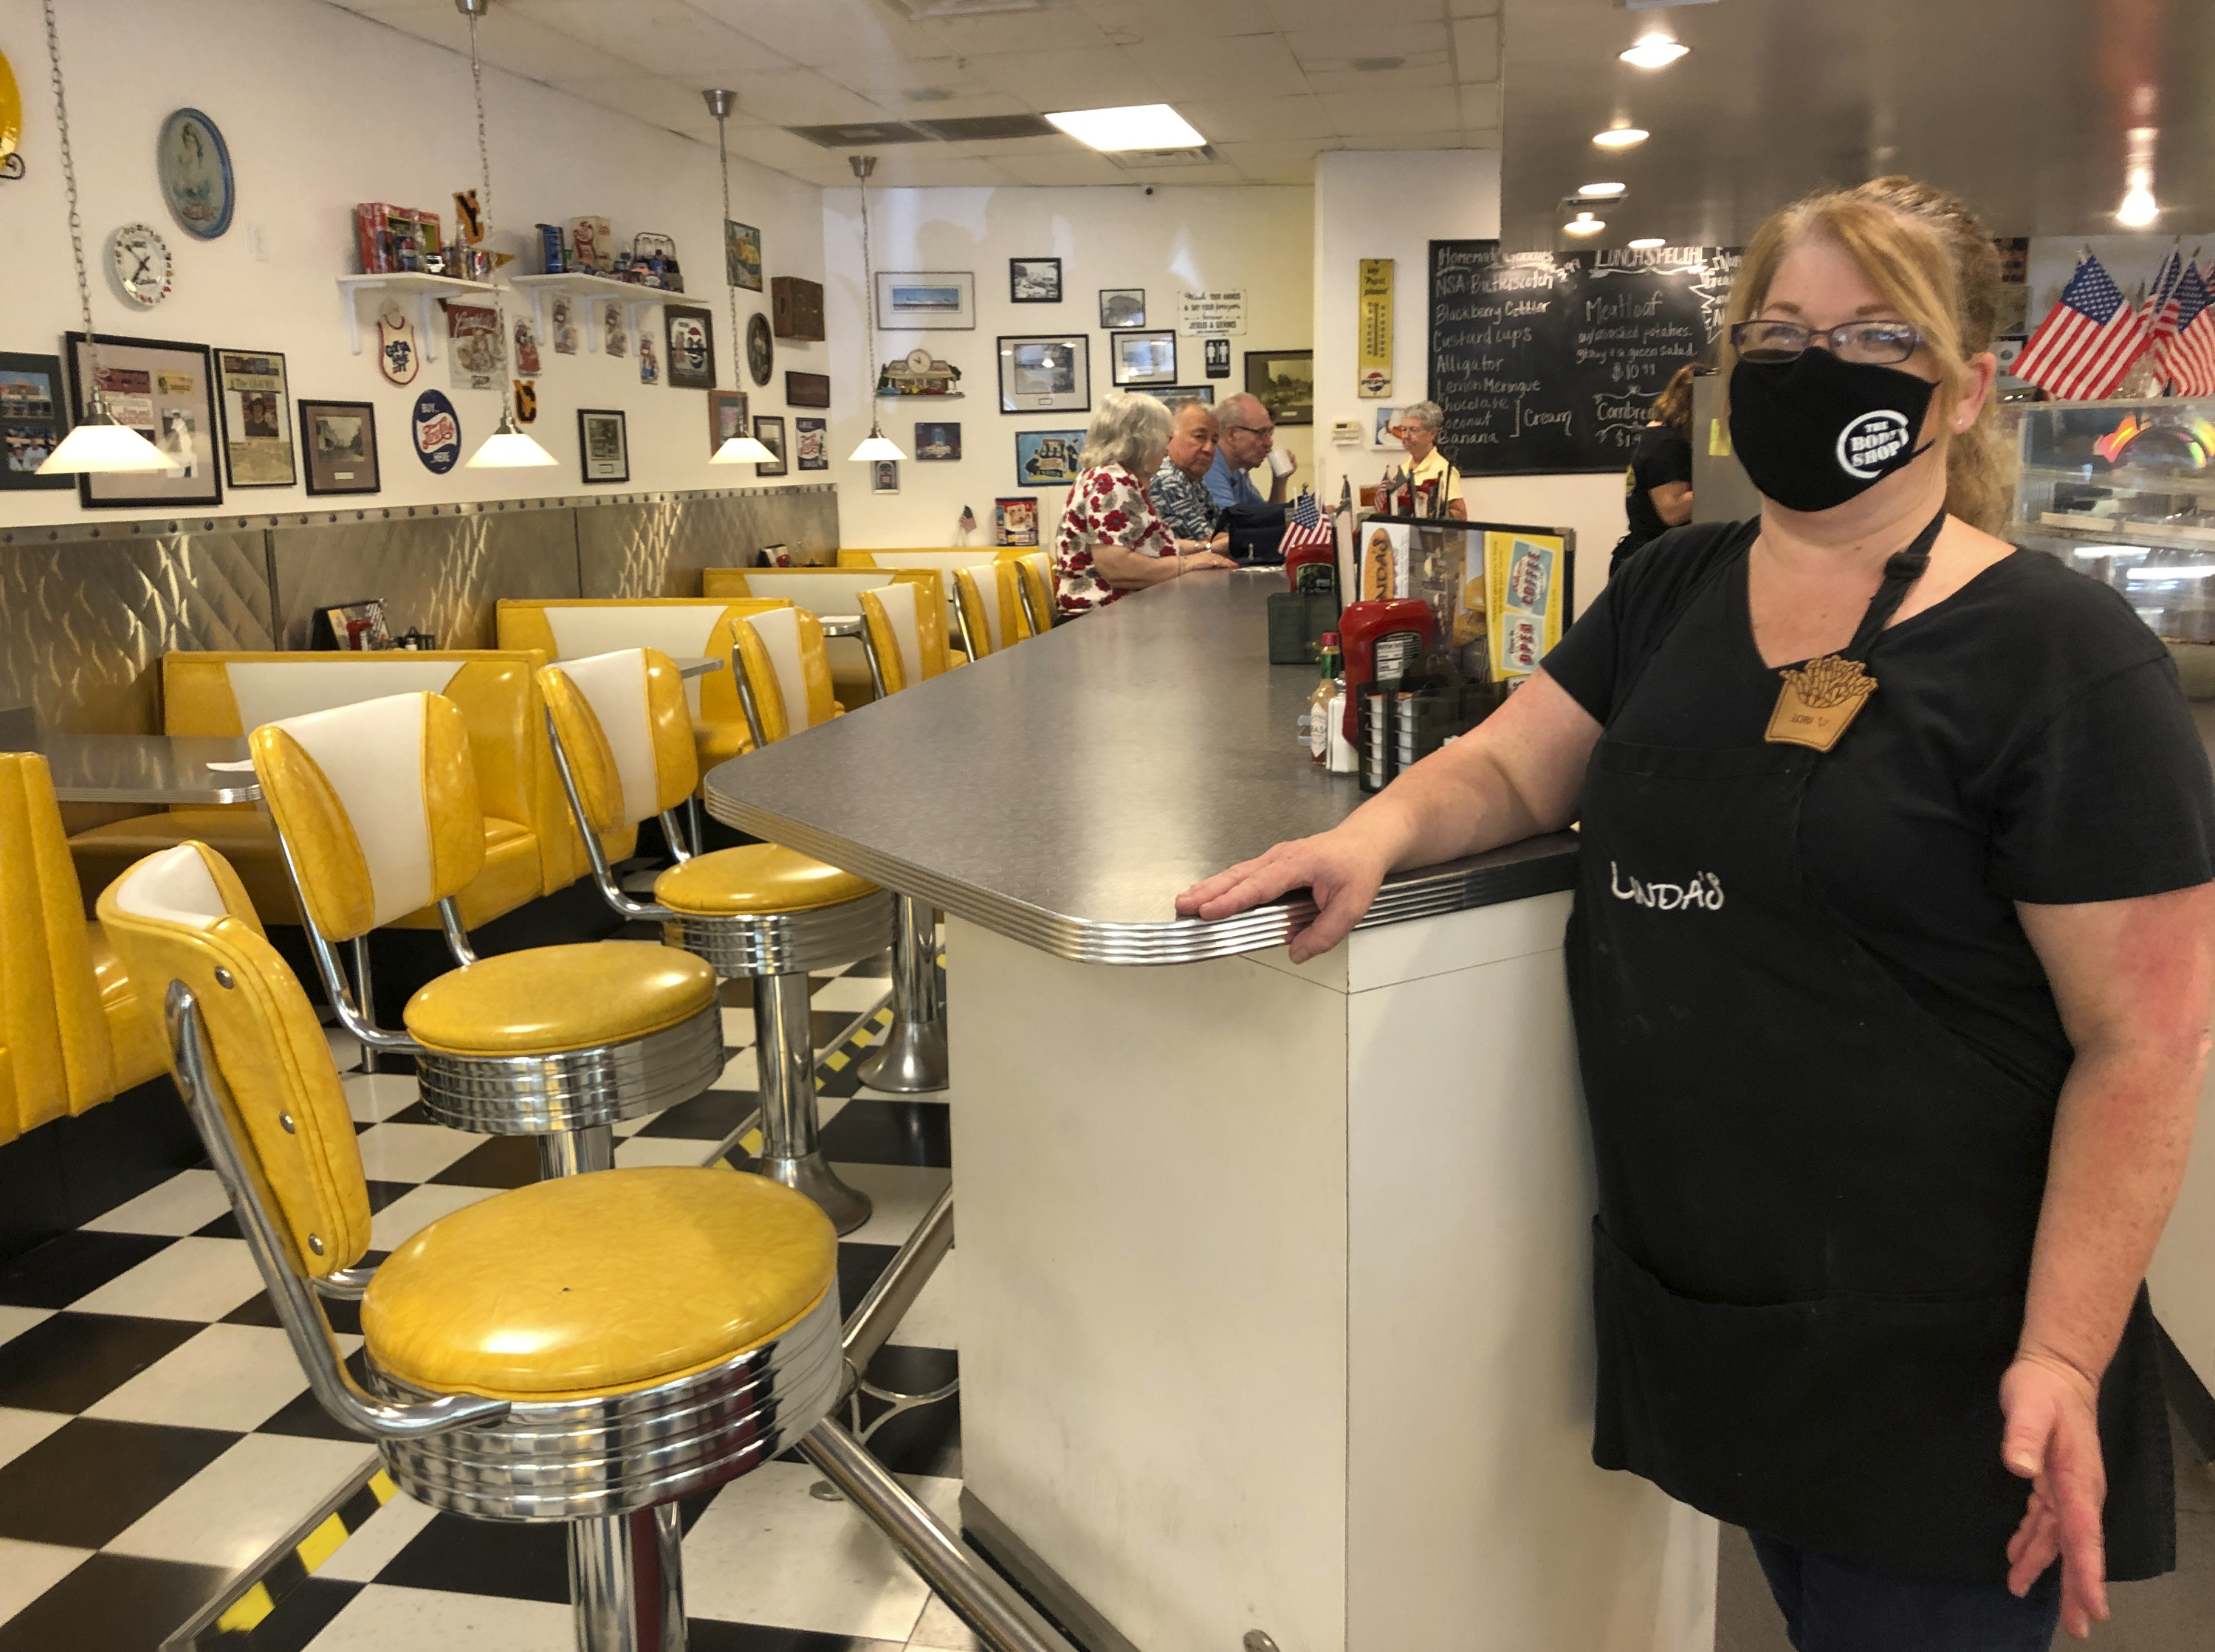 Restaurant manager Lori Pack stands at the counter of Linda's Soda Bar and Grill in Yuba City, Calif., July 9, 2020.